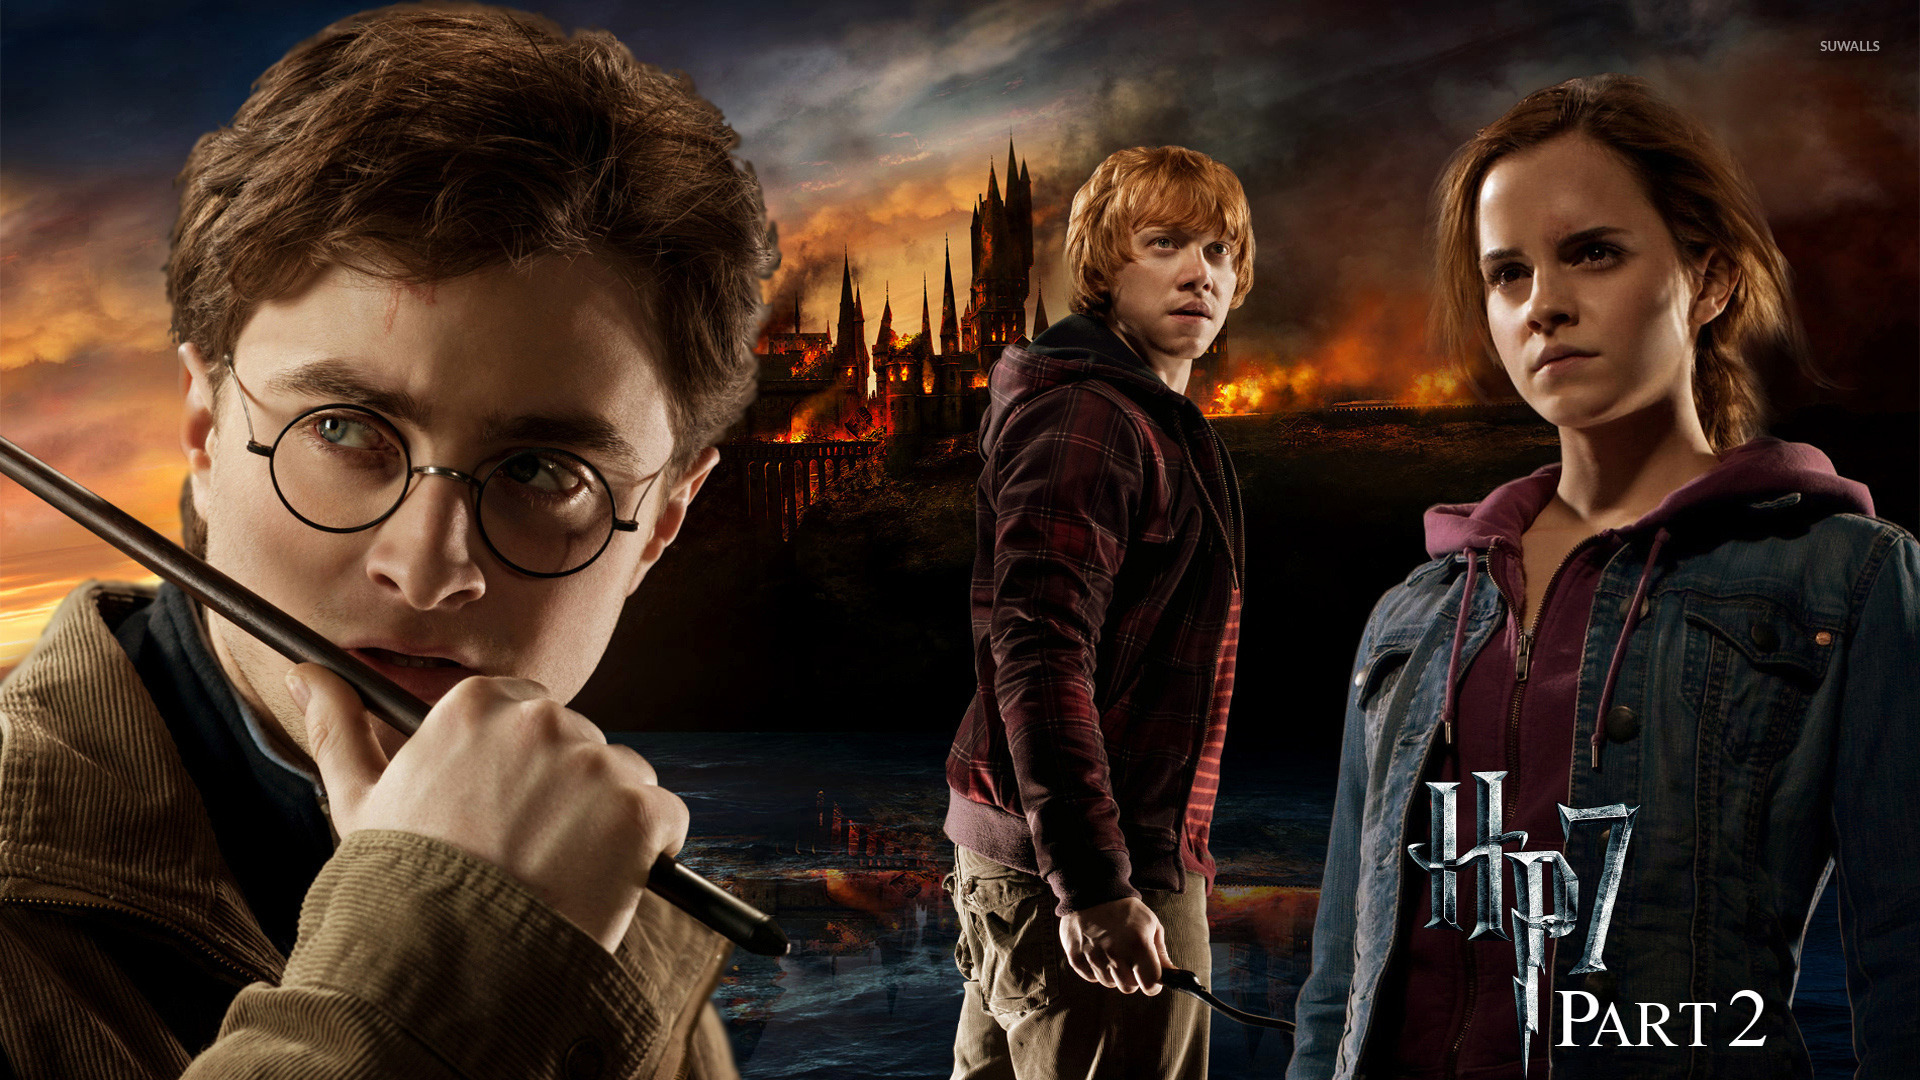 Wonderful Wallpaper Movie Pixels - harry-potter-and-the-deathly-hallows-part-2-40377-1920x1080  2018_25771.jpg